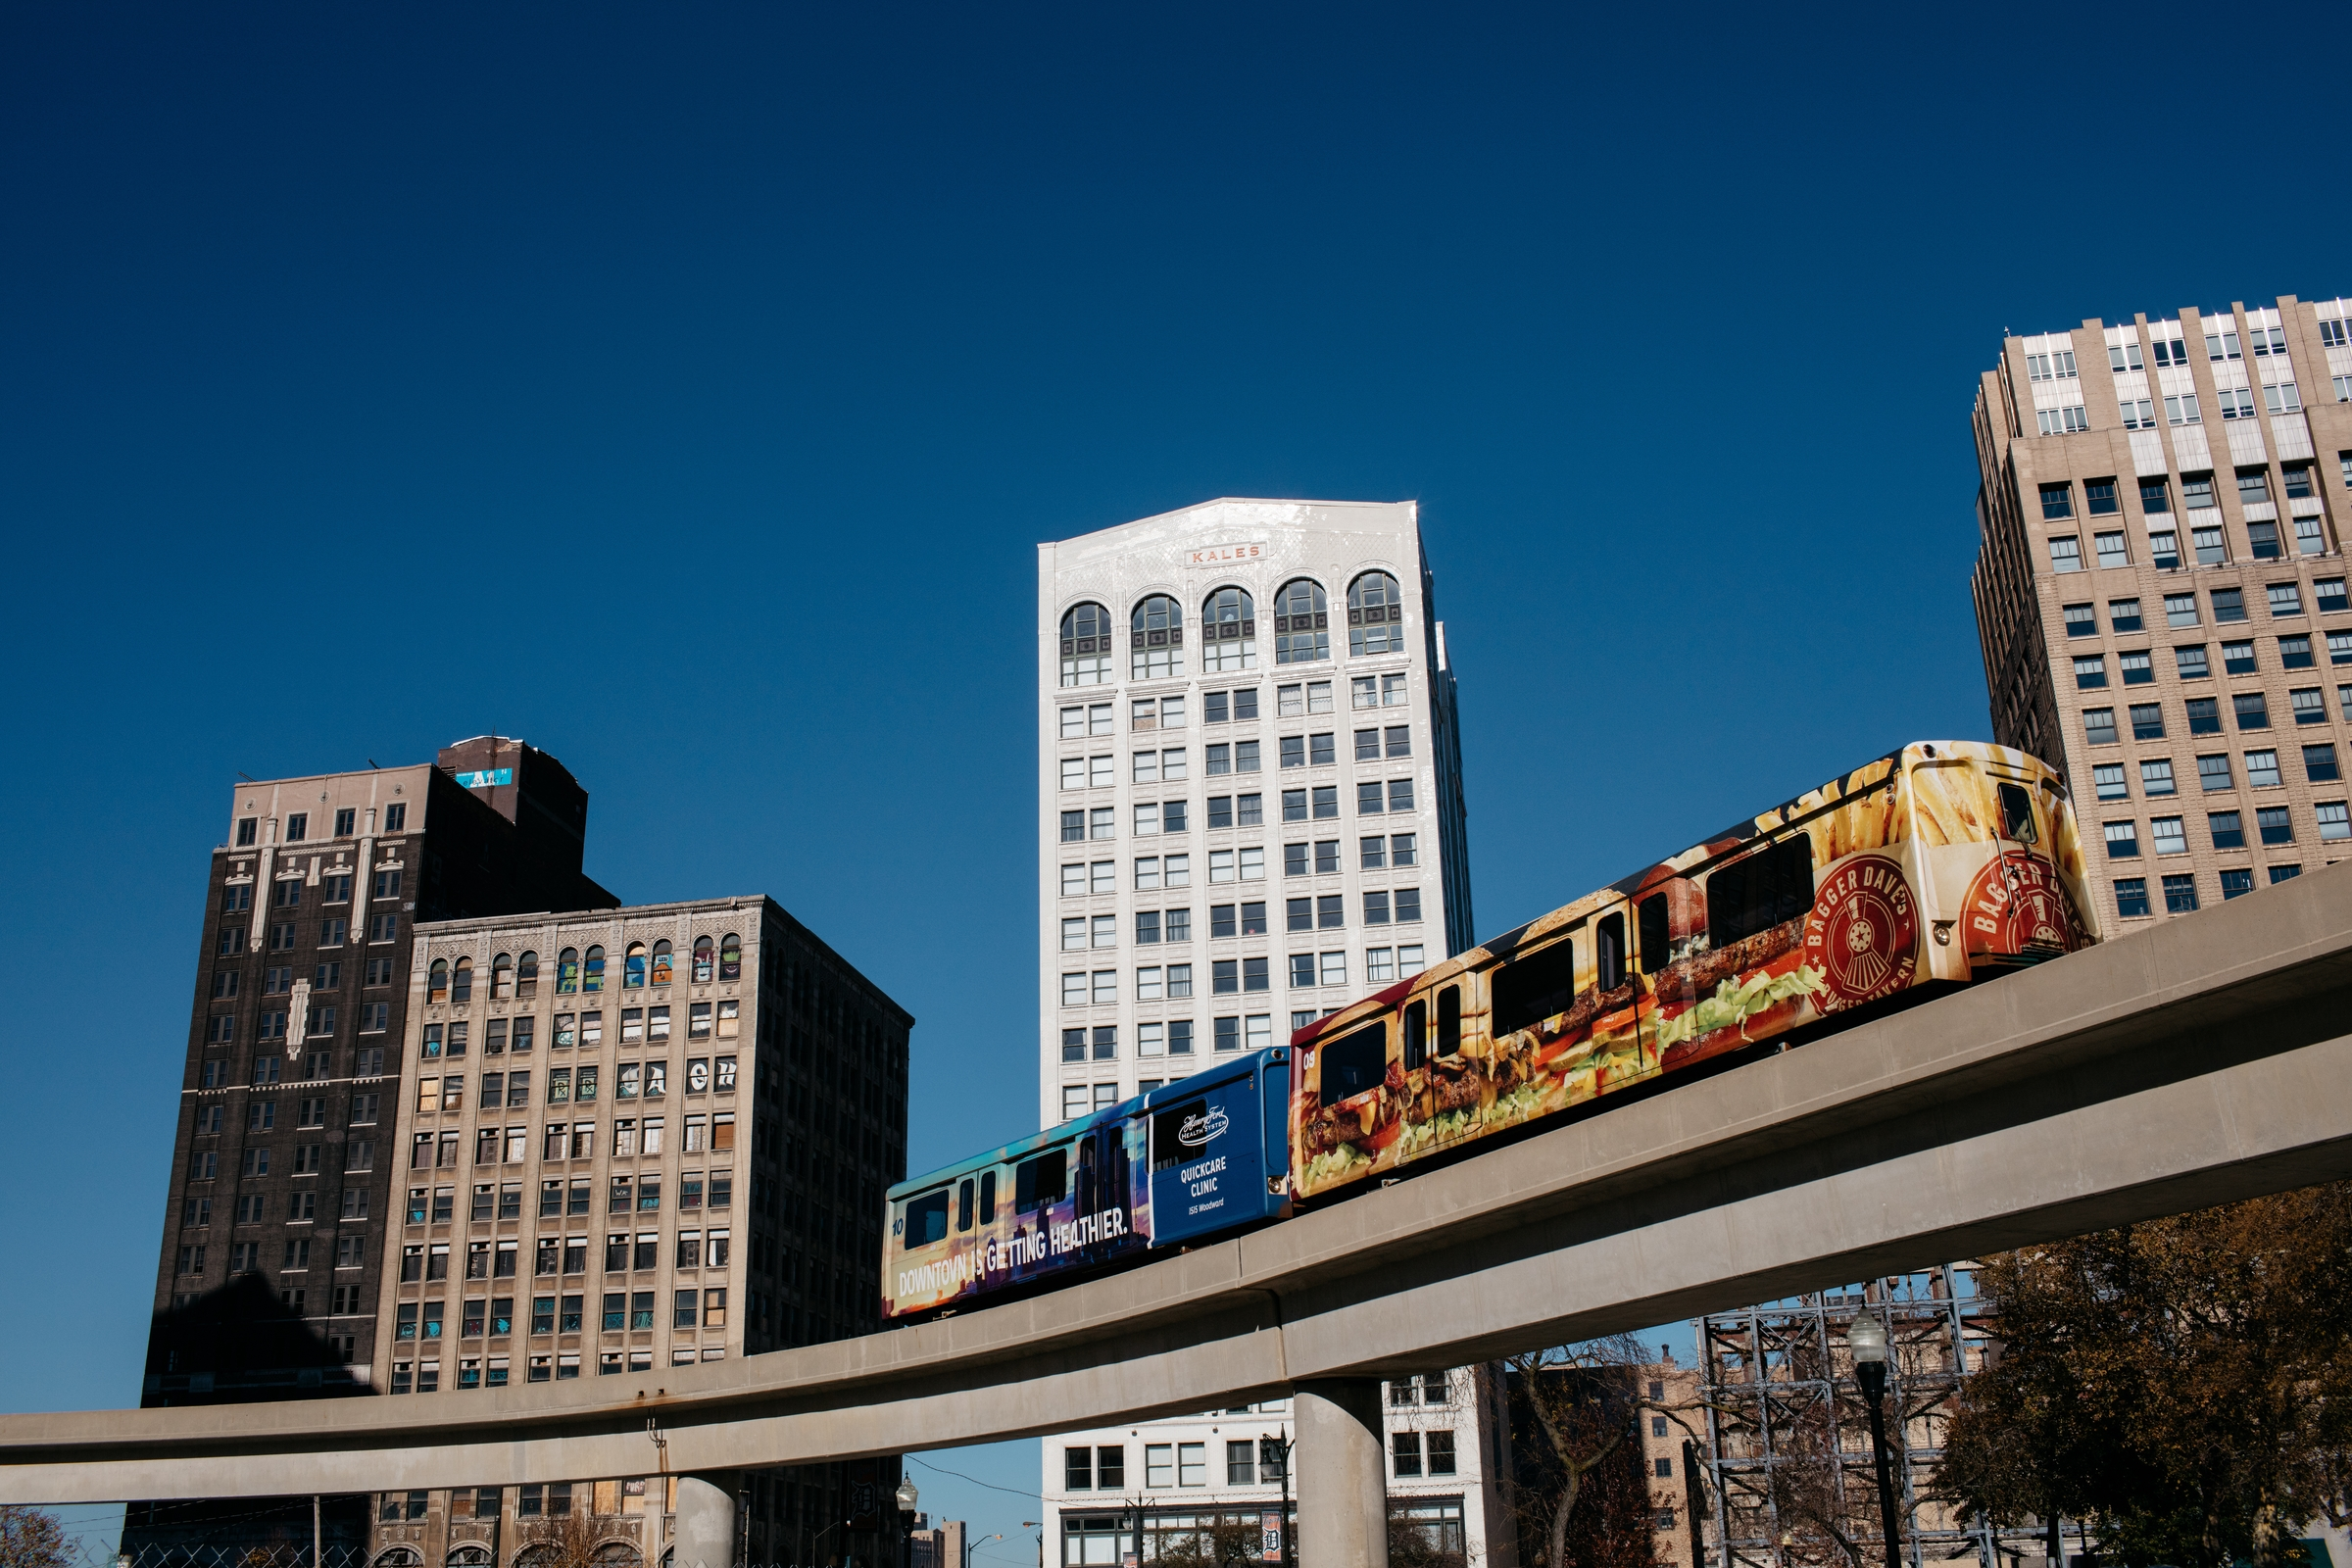 The Detroit People Mover